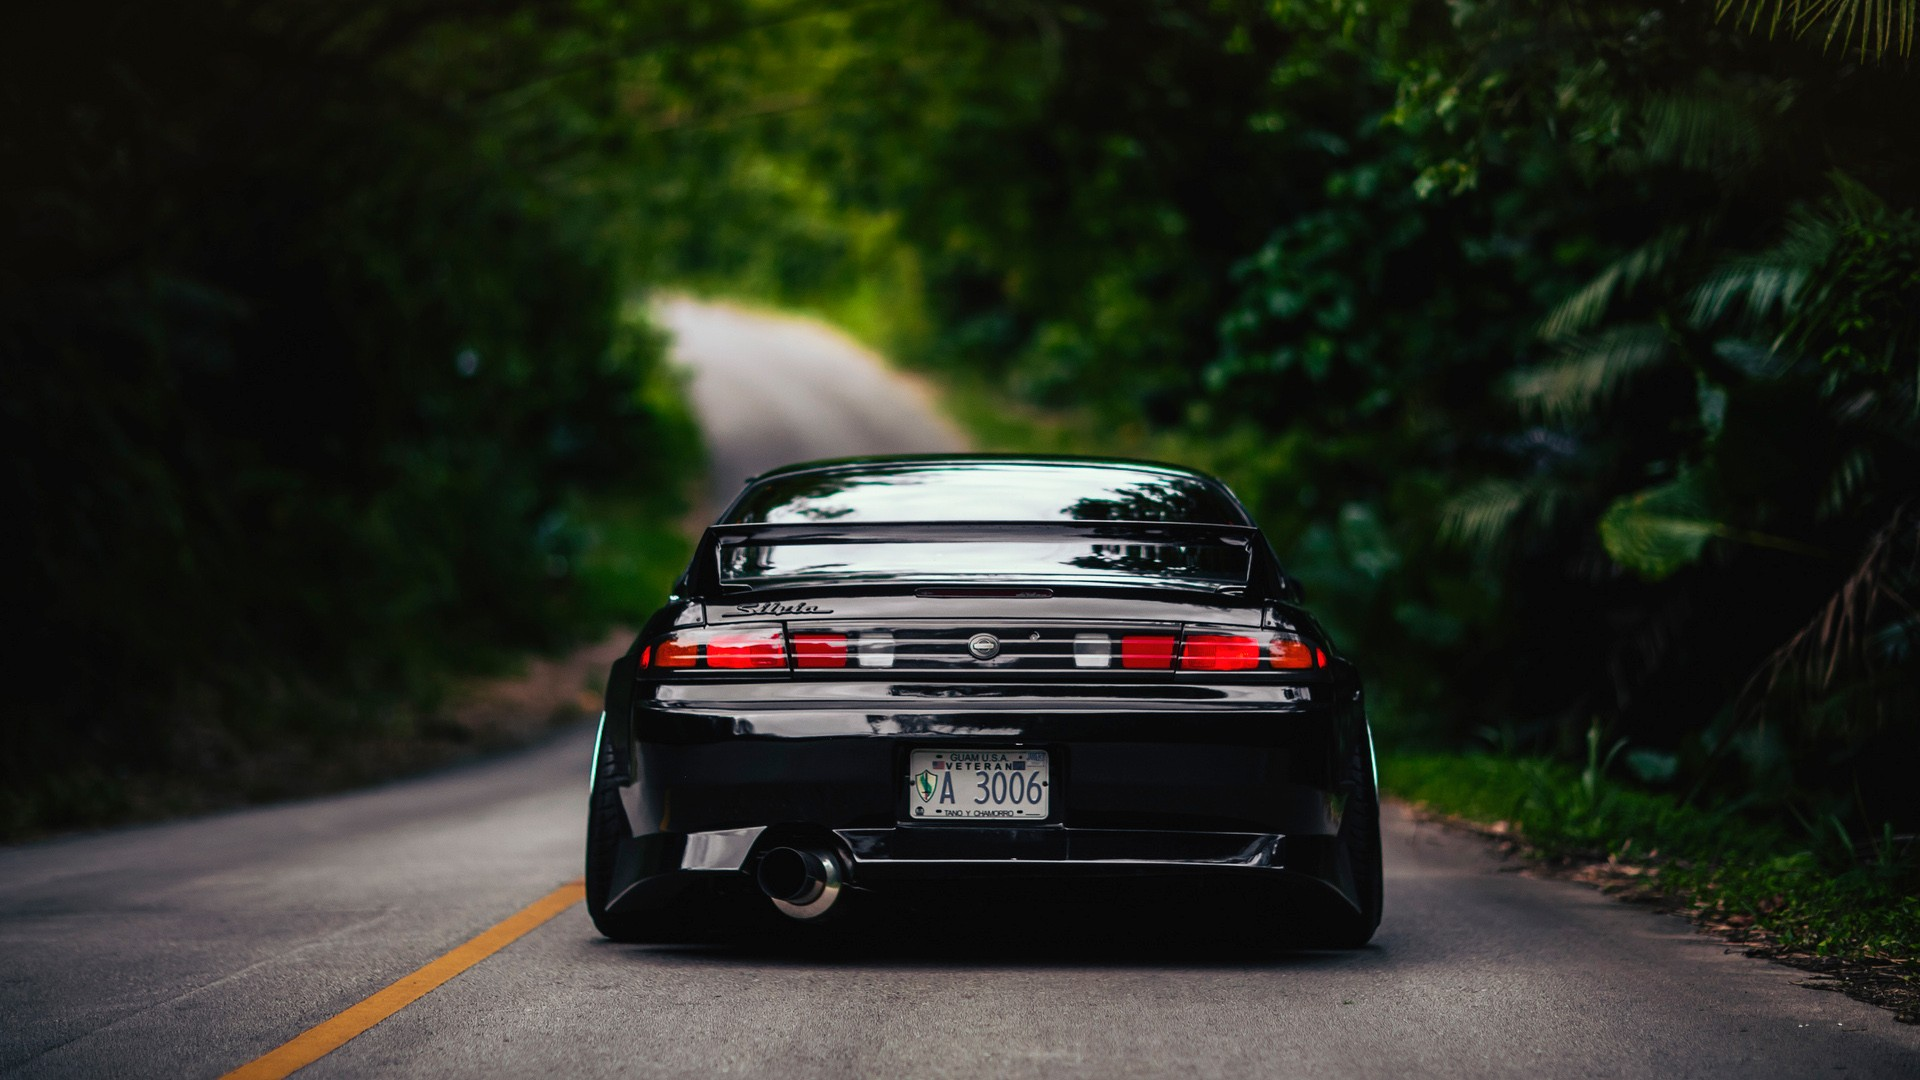 Jdm Cars Wallpaper